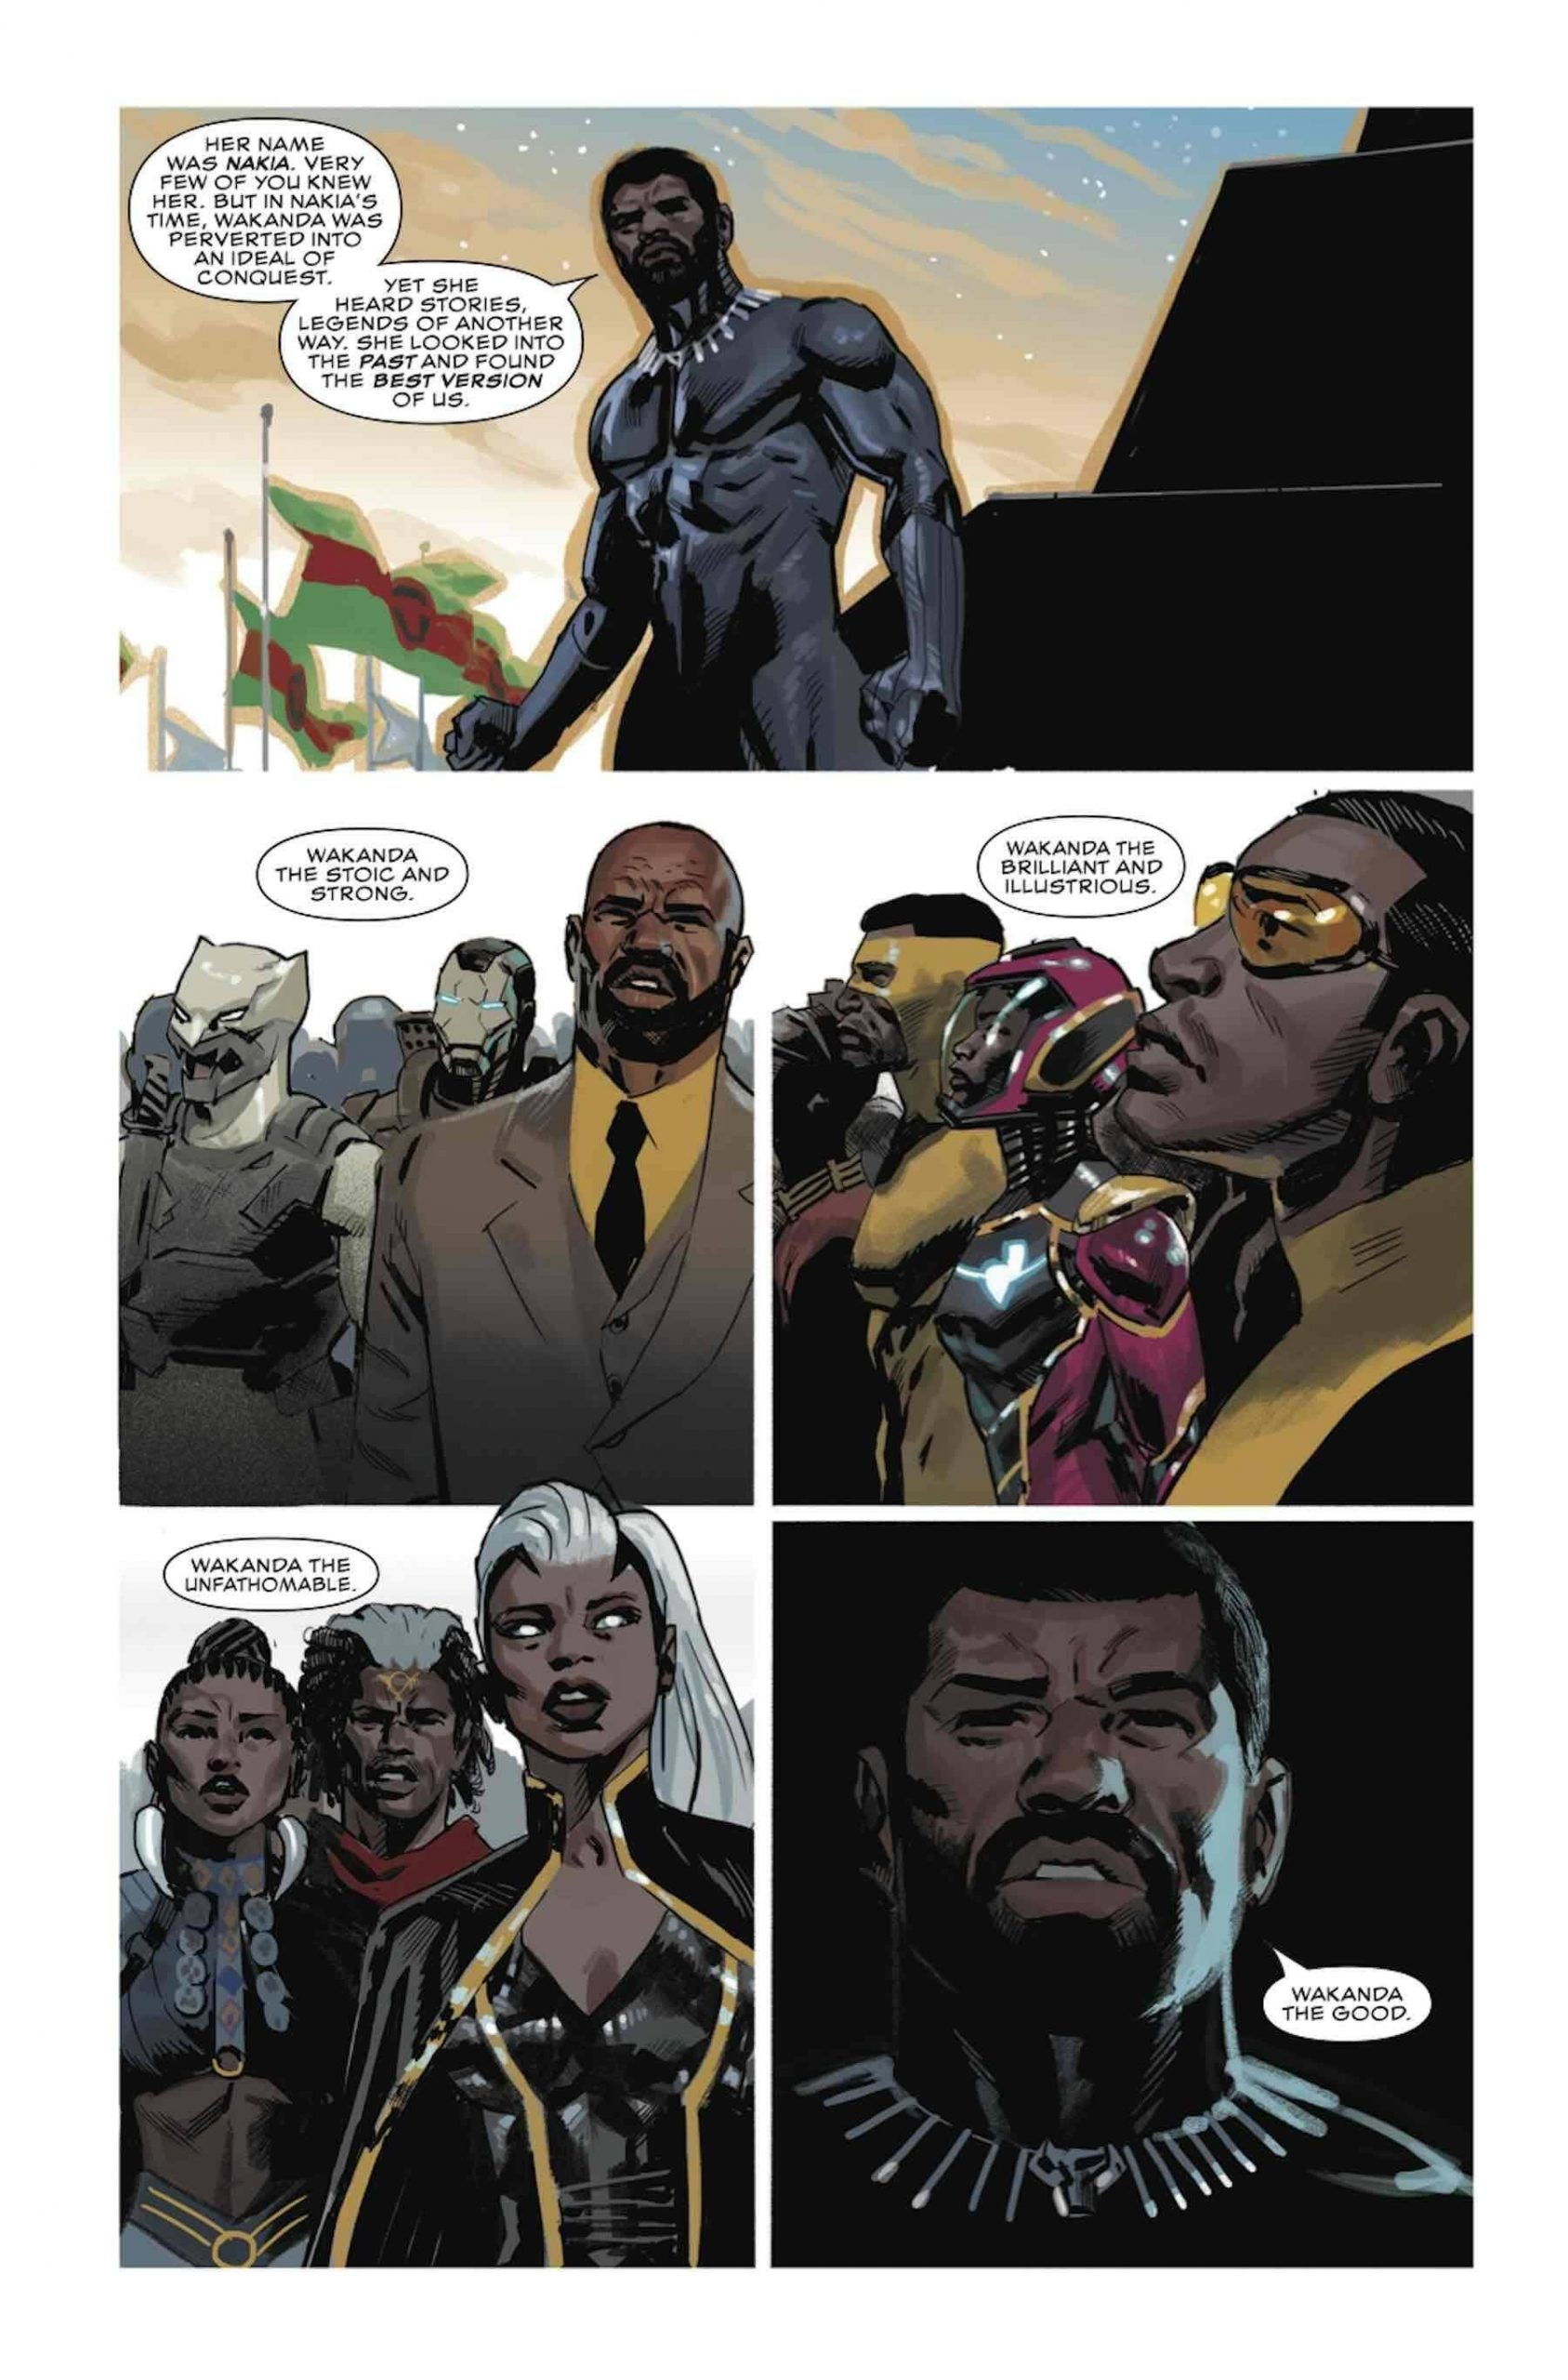 BLACK PANTHER #23 preview pages by Daniel Acuña and Ryan Bodenheim